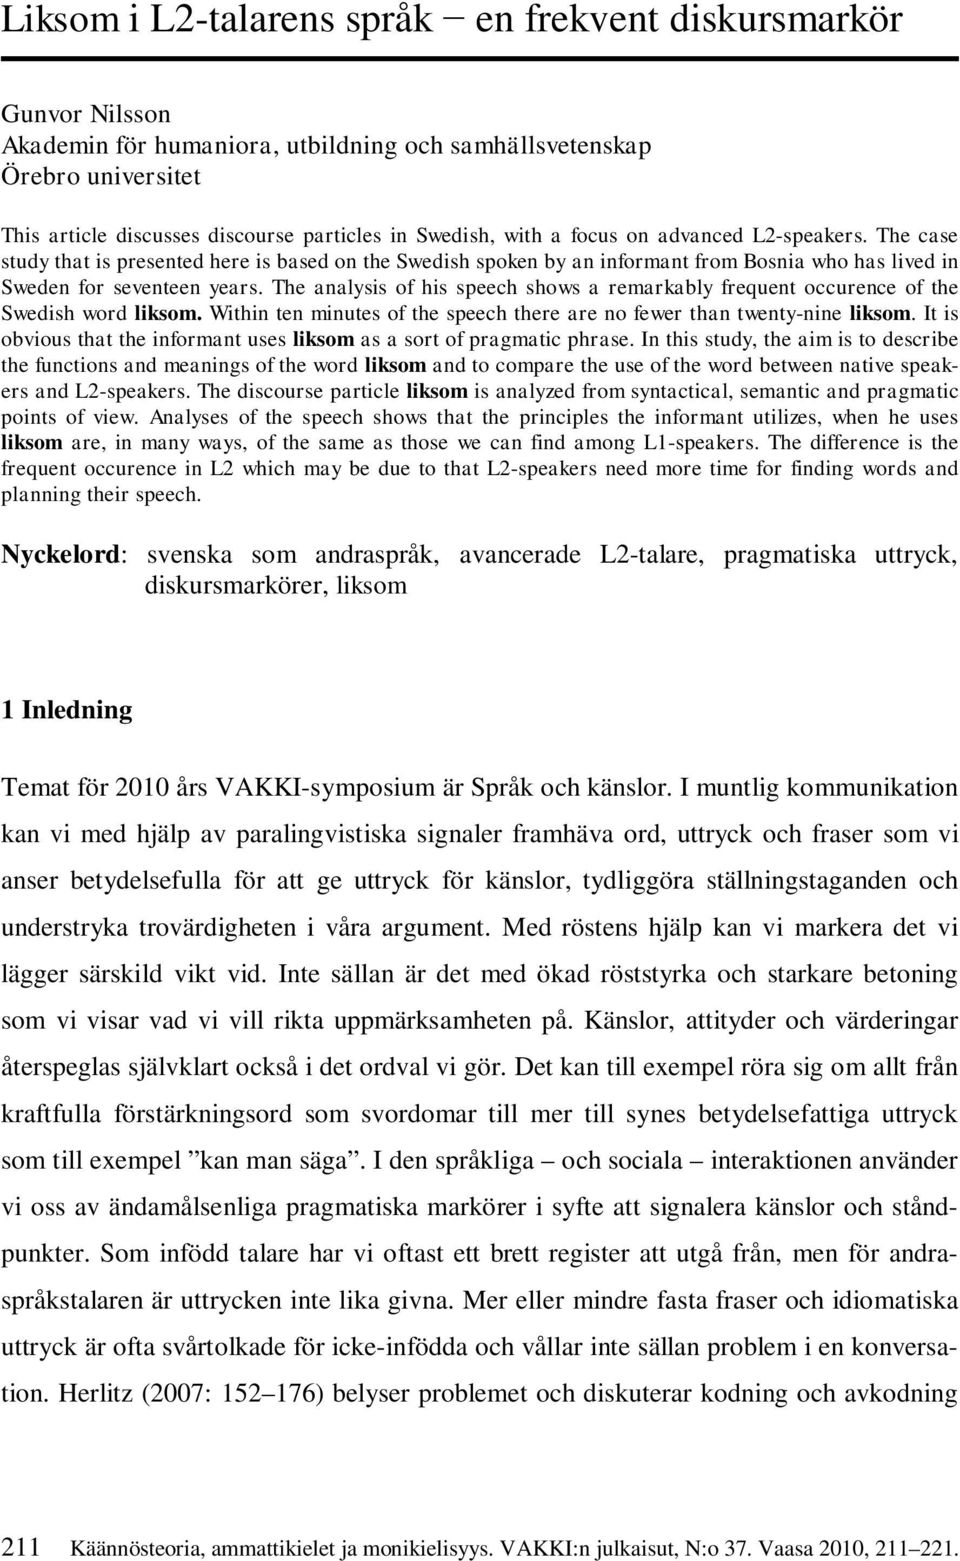 The analysis of his speech shows a remarkably frequent occurence of the Swedish word liksom. Within ten minutes of the speech there are no fewer than twenty-nine liksom.